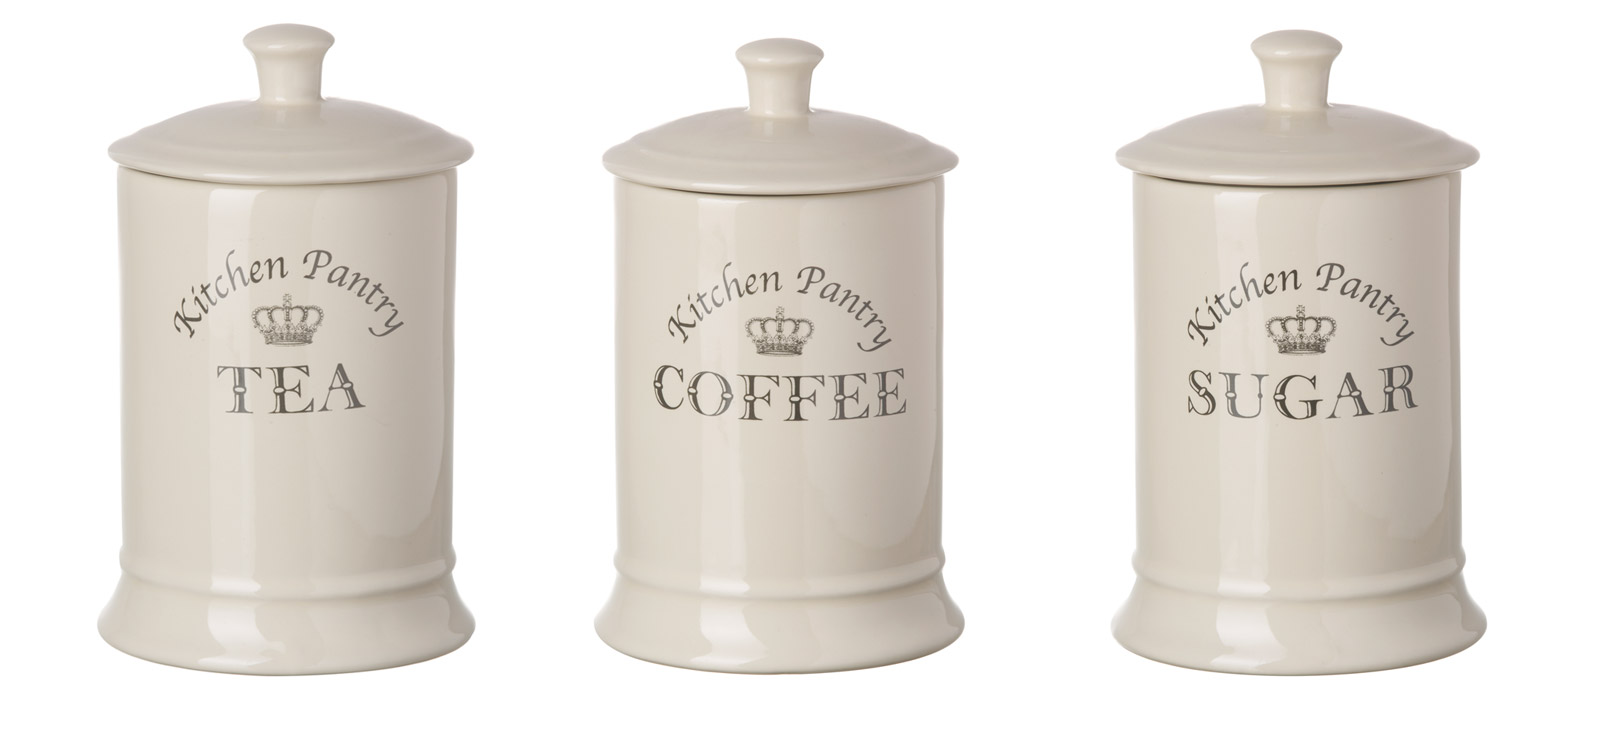 Your Tea Coffee Sugar In Style With These Cylinder Majestic Canisters